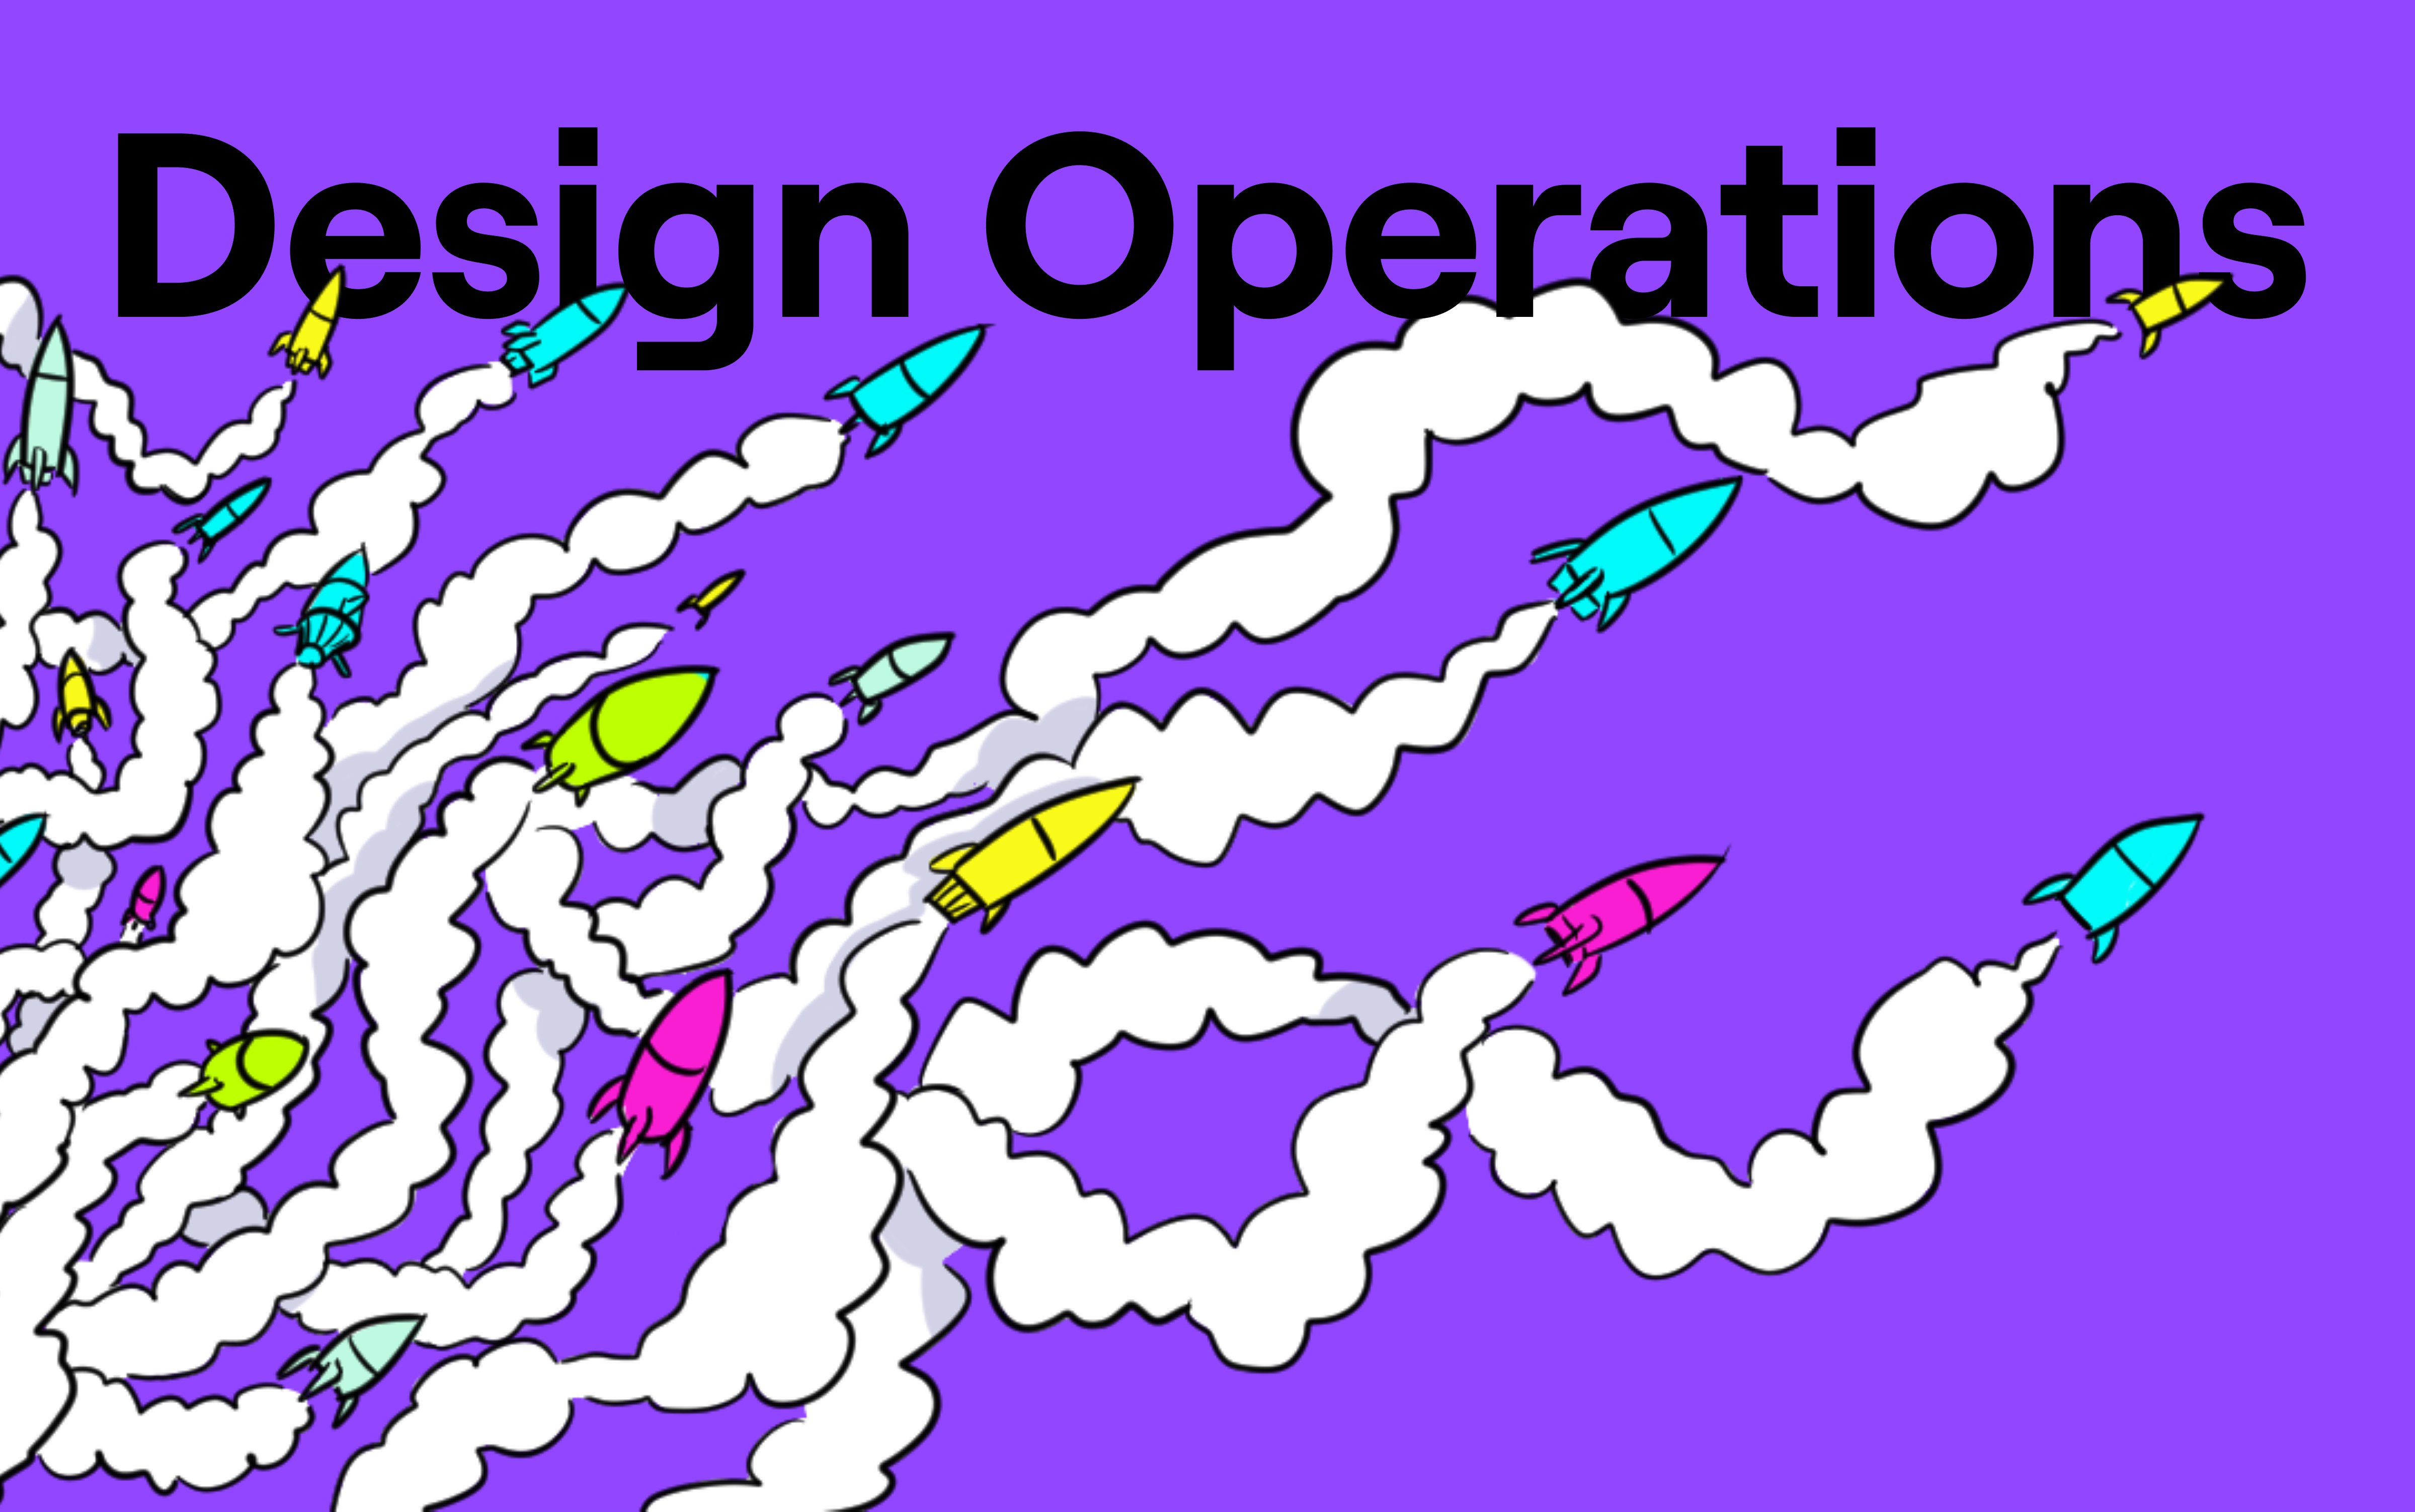 Design Operations: how to improve visibility and predictability of design work